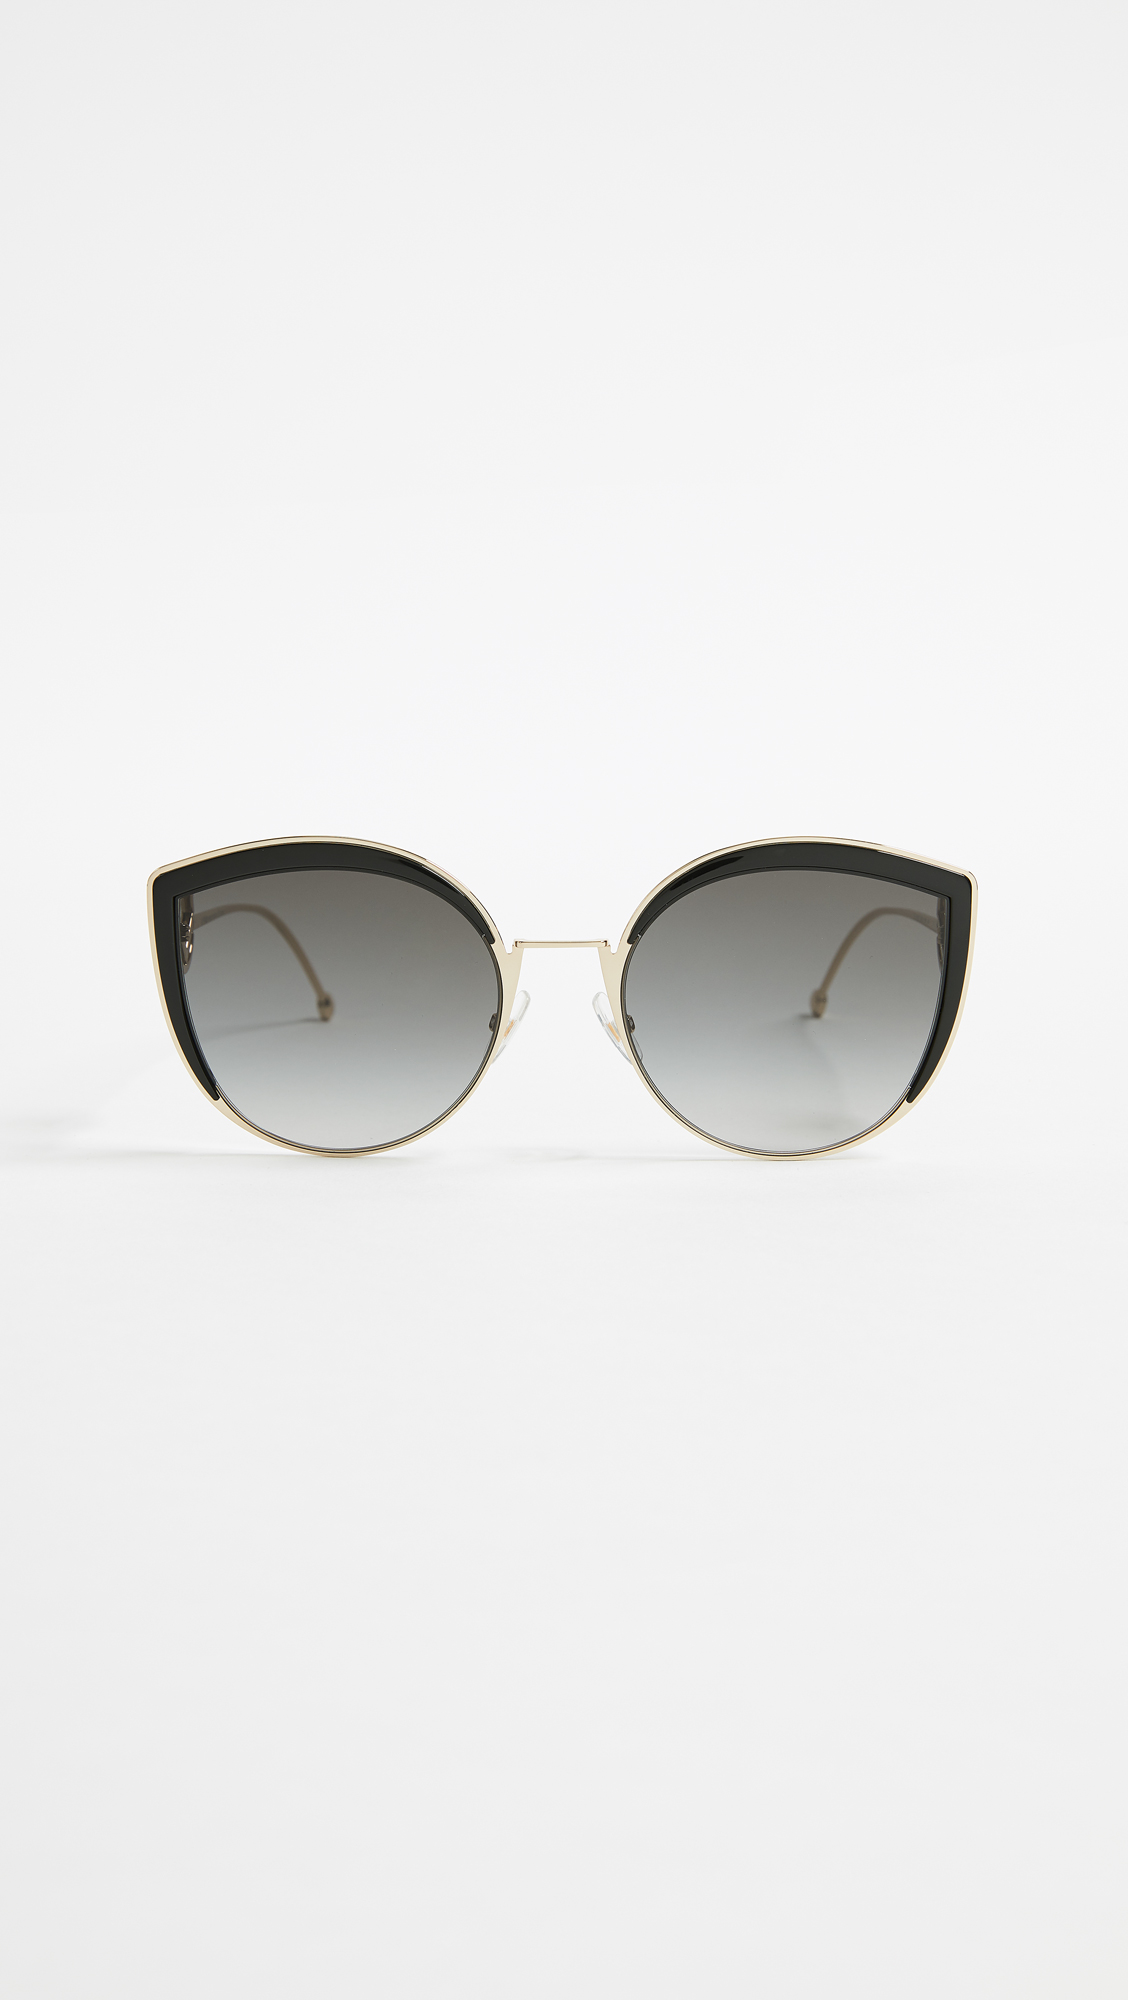 1d17aea554 Fendi Round Slight Cat Eye Sunglasses